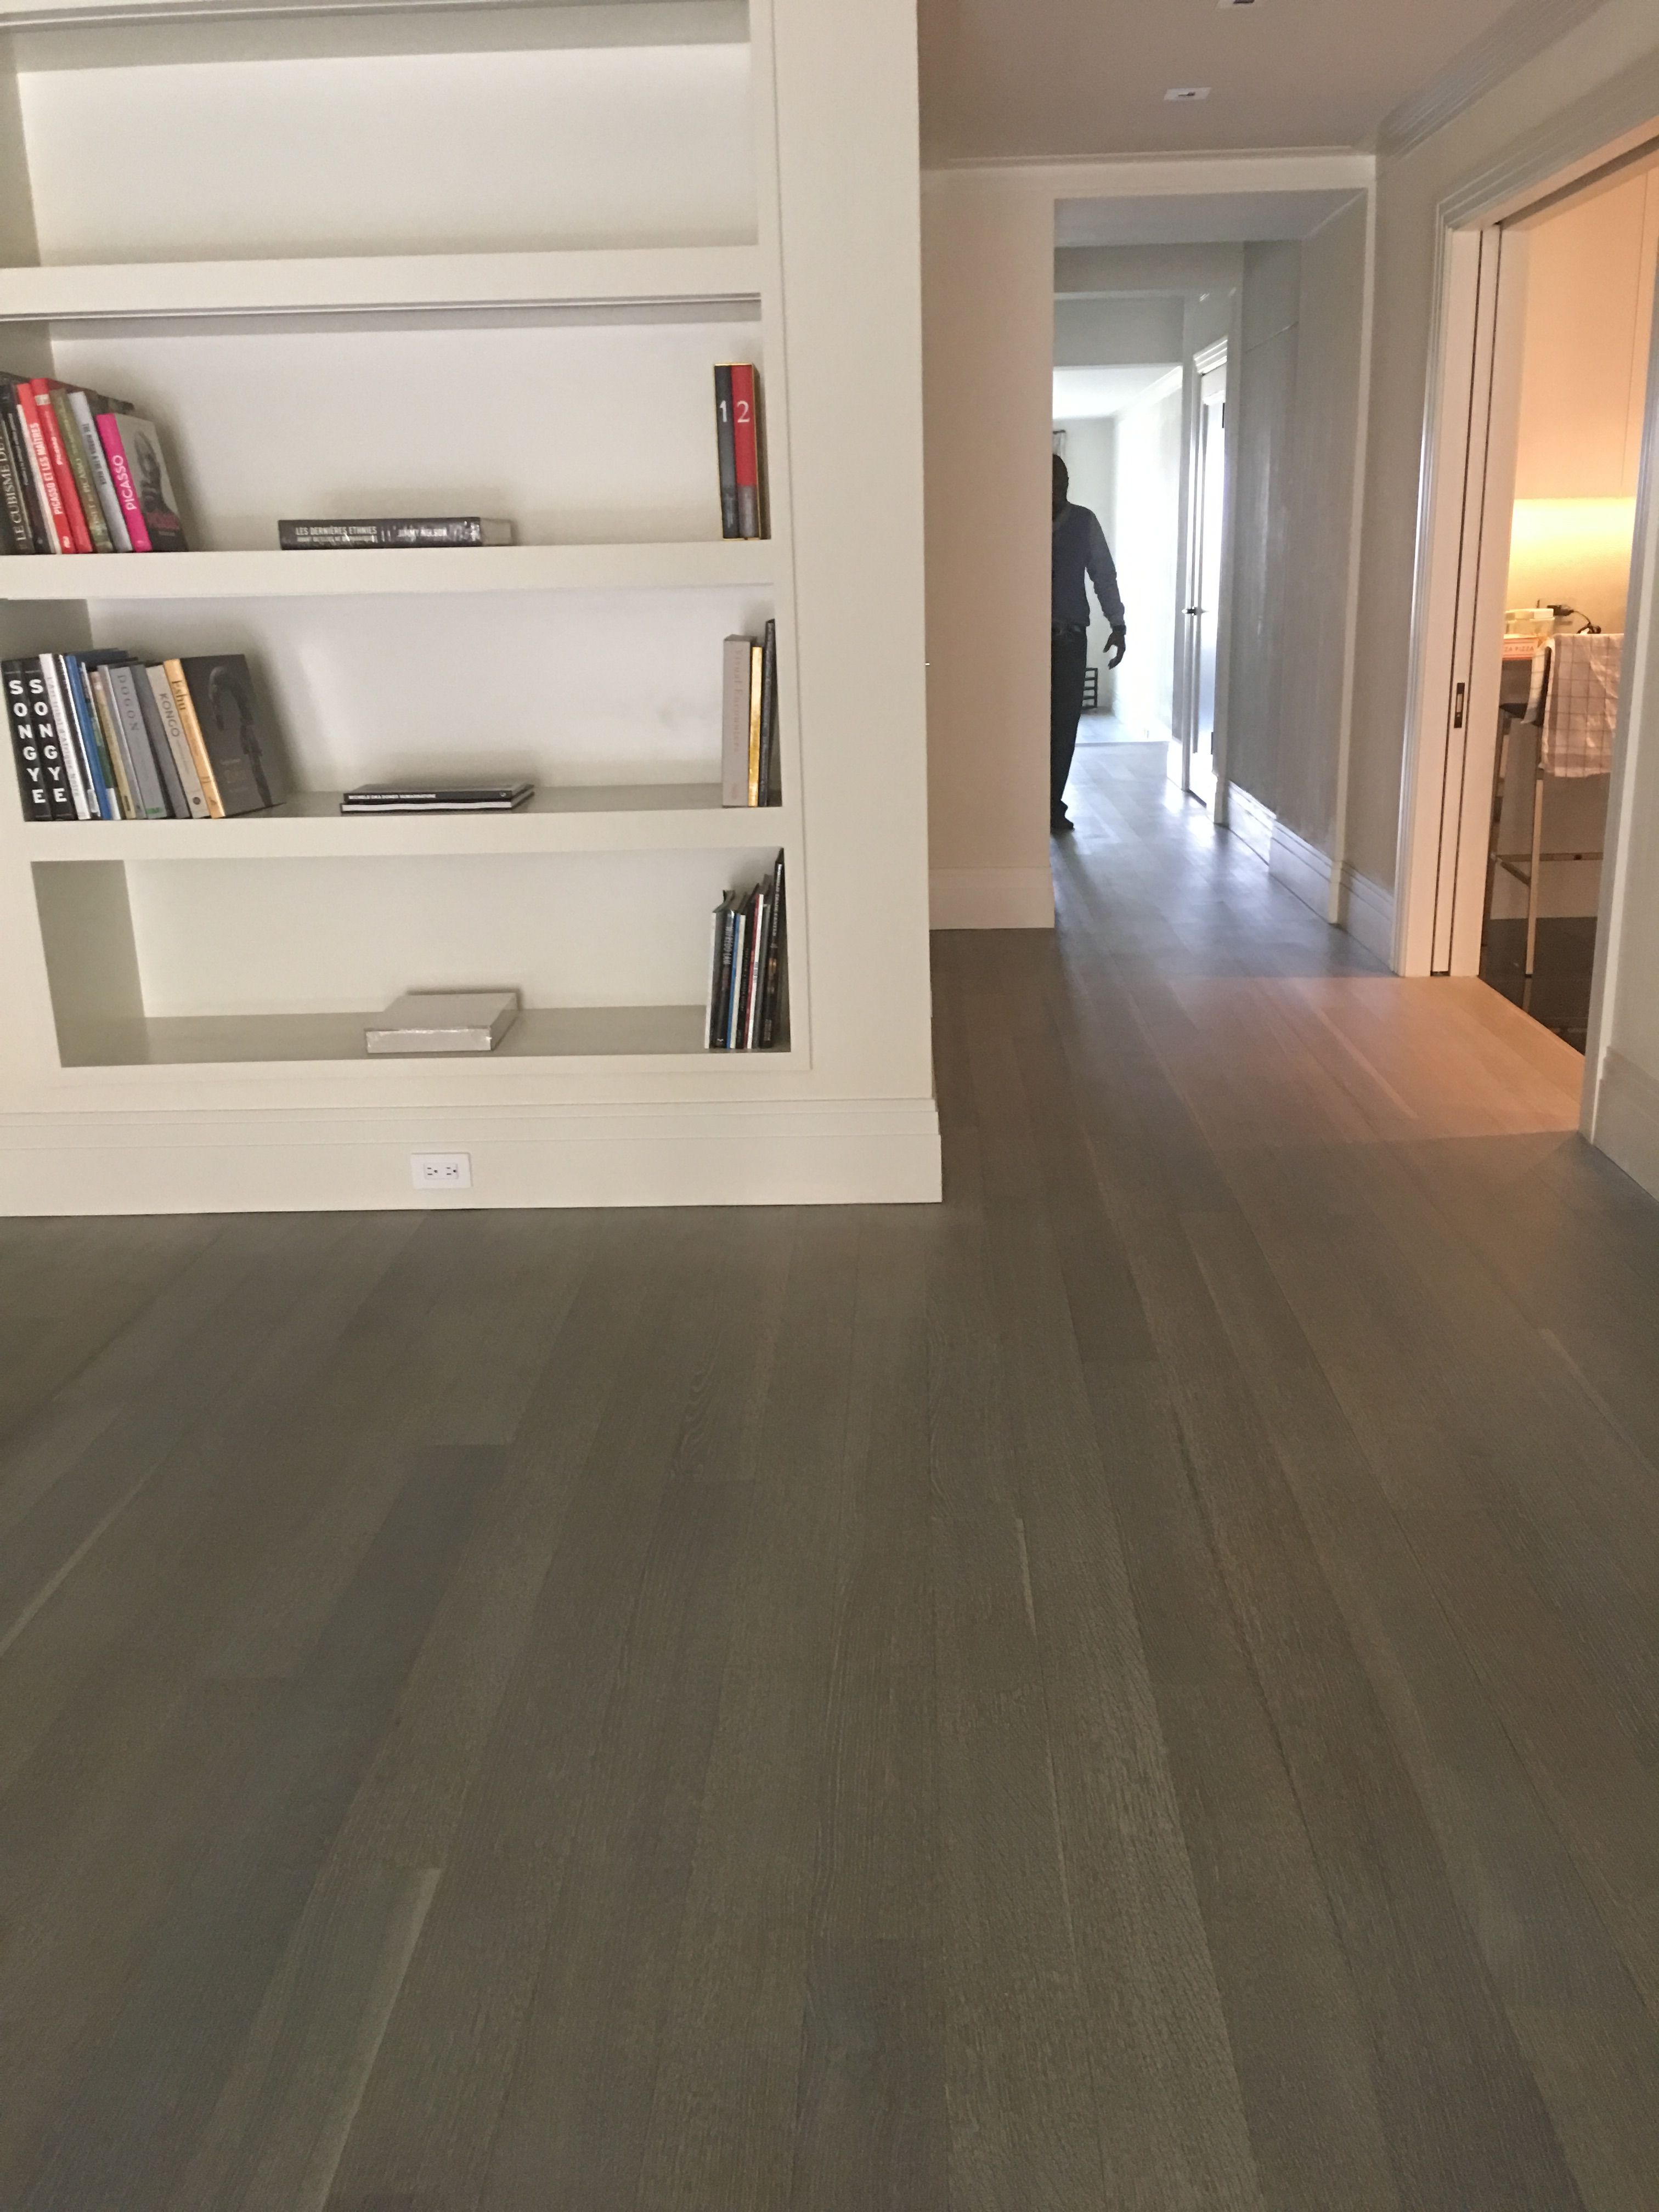 There are many different types of hardwood flooring that